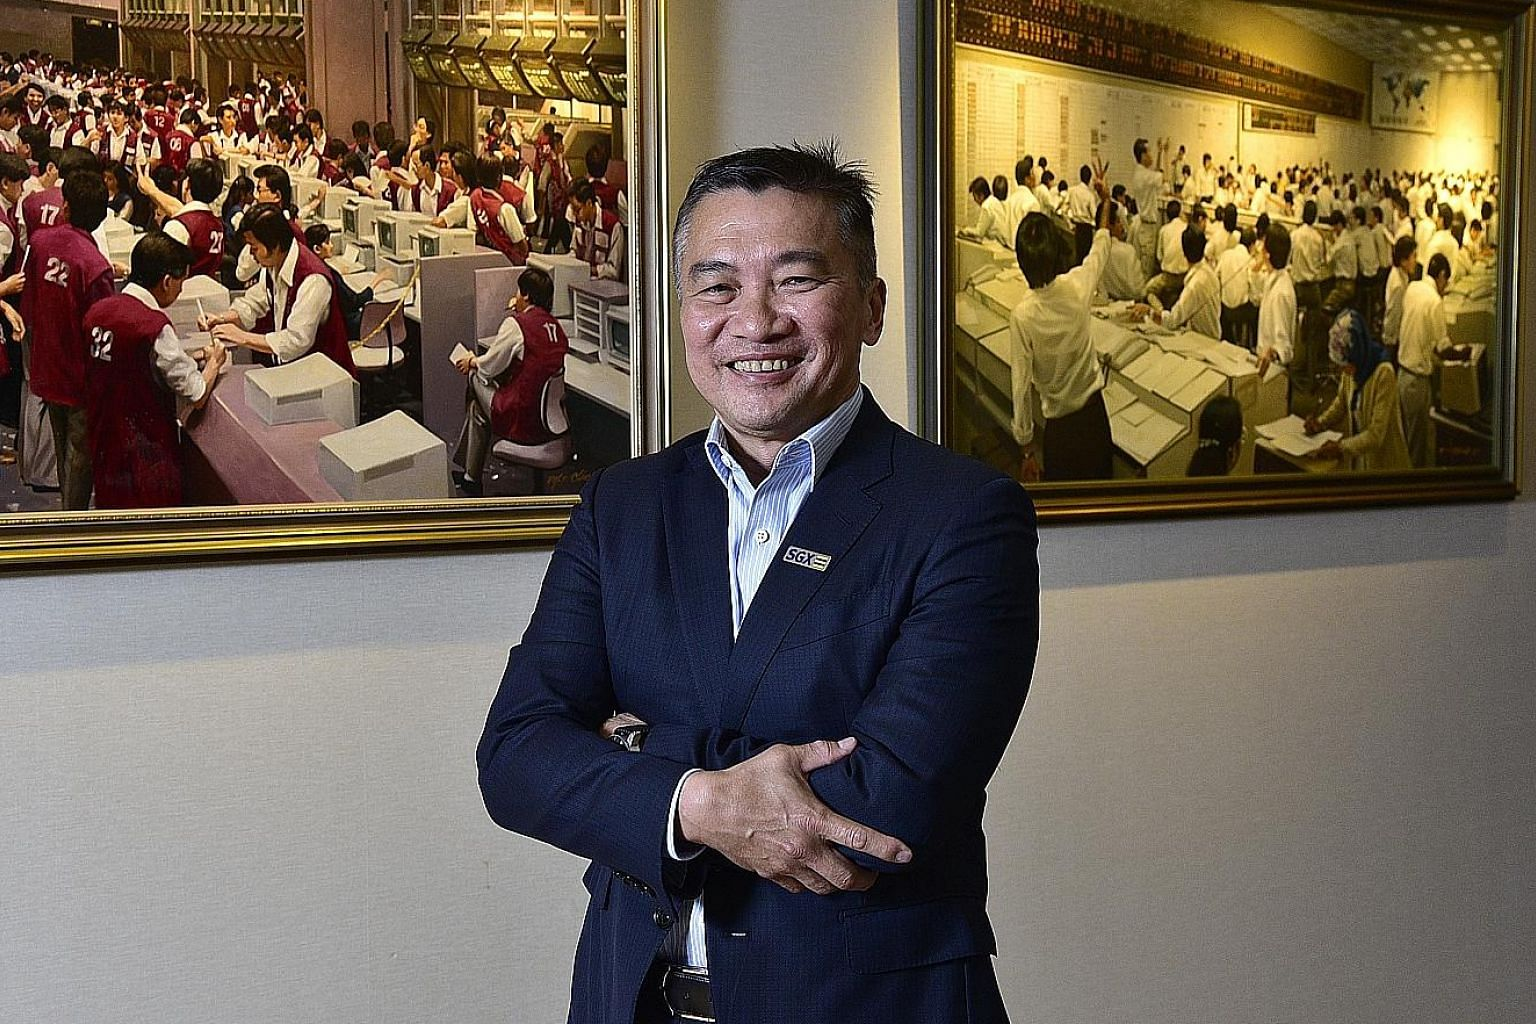 Singapore Exchange chief executive Loh Boon Chye says combining the cash and derivatives trade of multiple assets on a single platform will increase participation from more market-makers and boost trading activity. He adds that scale is not just size